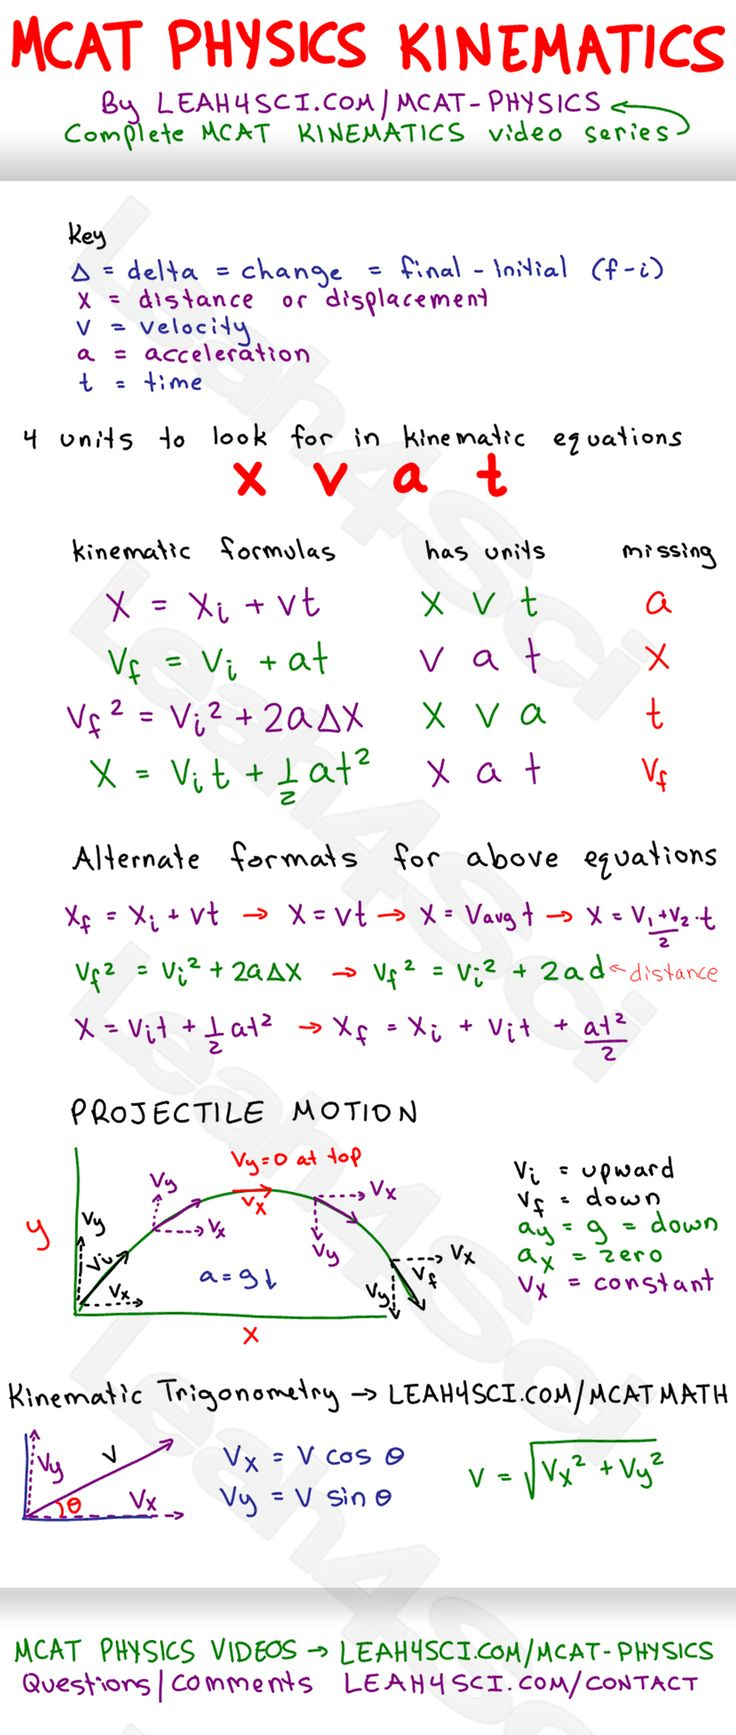 Kinematics-Cheat-Sheet-MCAT-Physics-Study-Guide.jpg 1,069×2,521 pixels